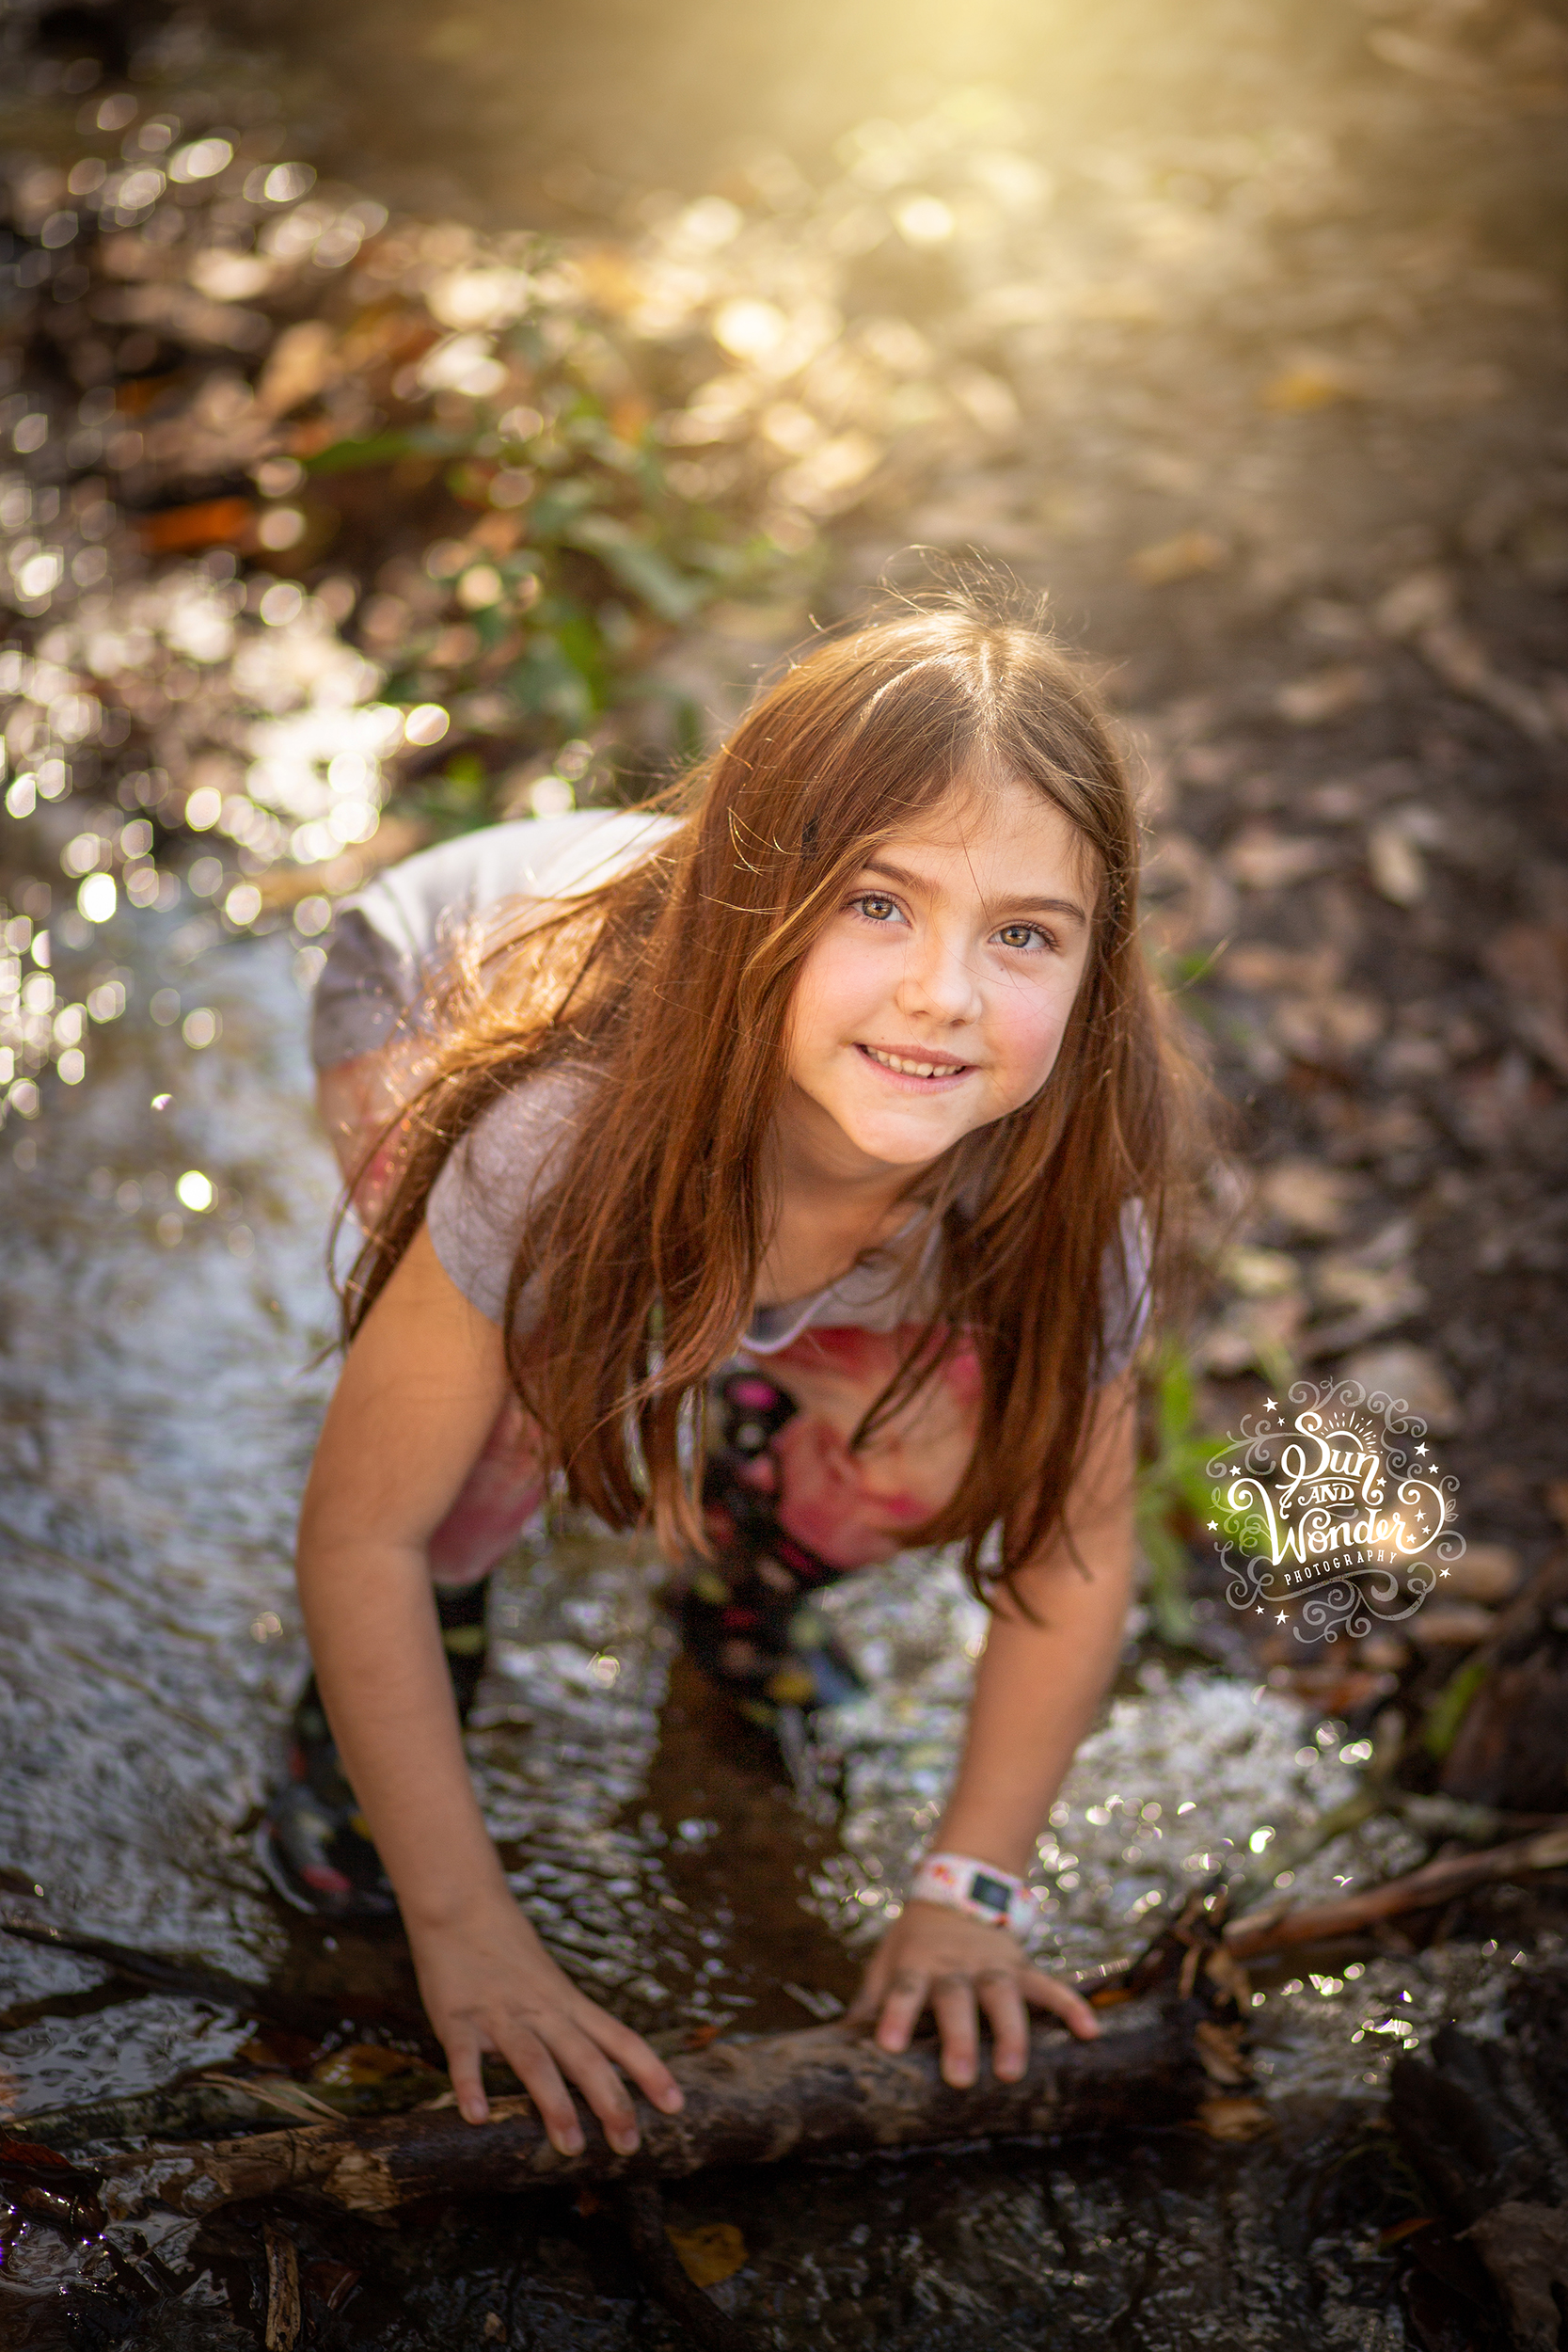 Sun and Wonder Photography - Portrait Sessions